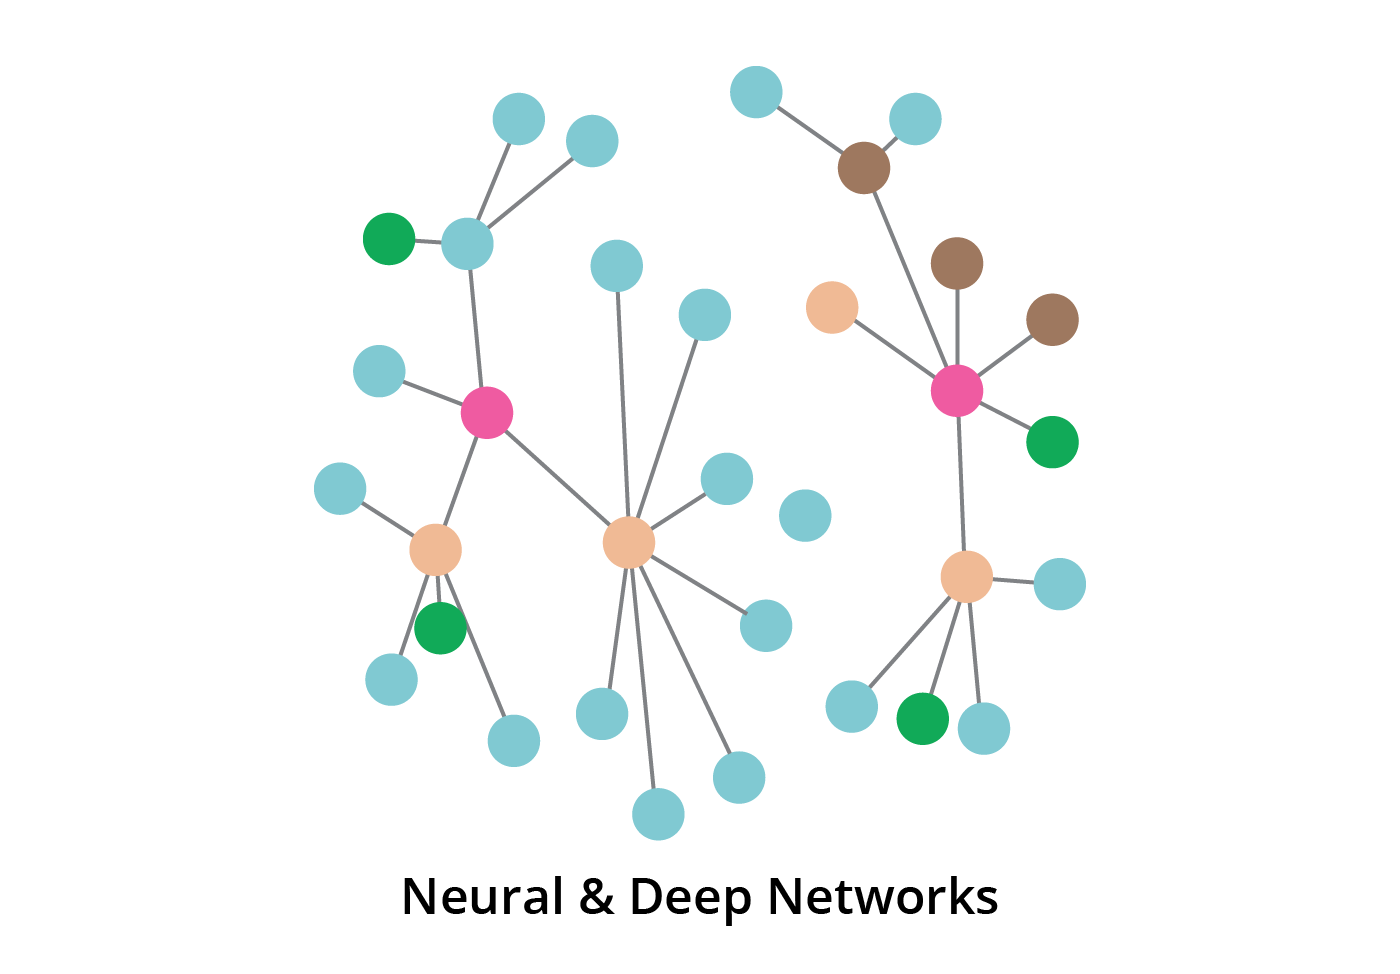 neural networks and deep networks